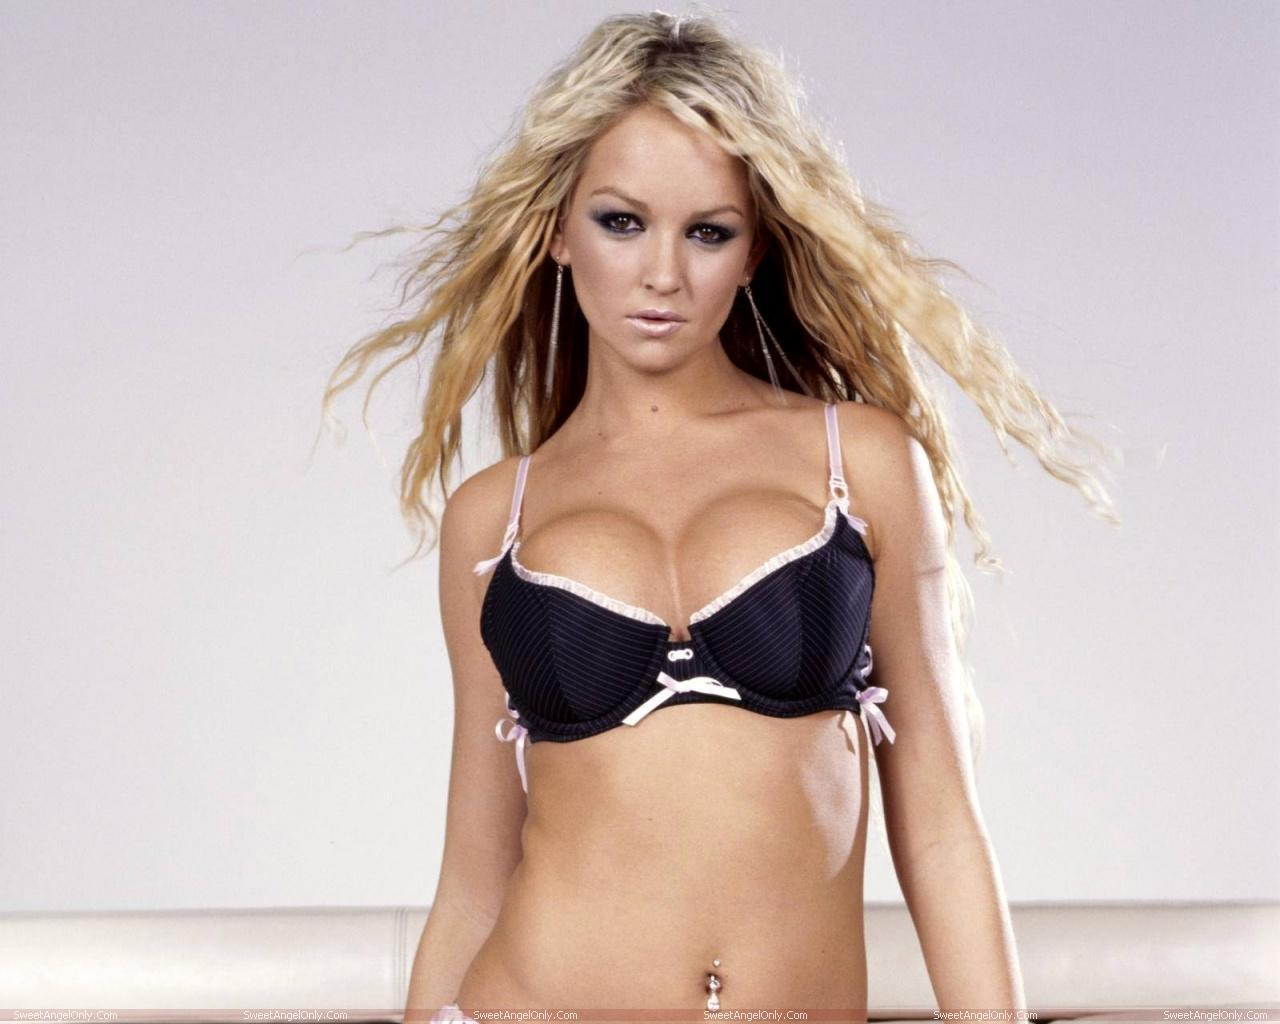 http://2.bp.blogspot.com/-013rJM_-Eik/TWjZ_RDONMI/AAAAAAAAEyc/Hxi7RQxG9vE/s1600/actress_jennifer_ellison_hot_wallpaper_05.jpg